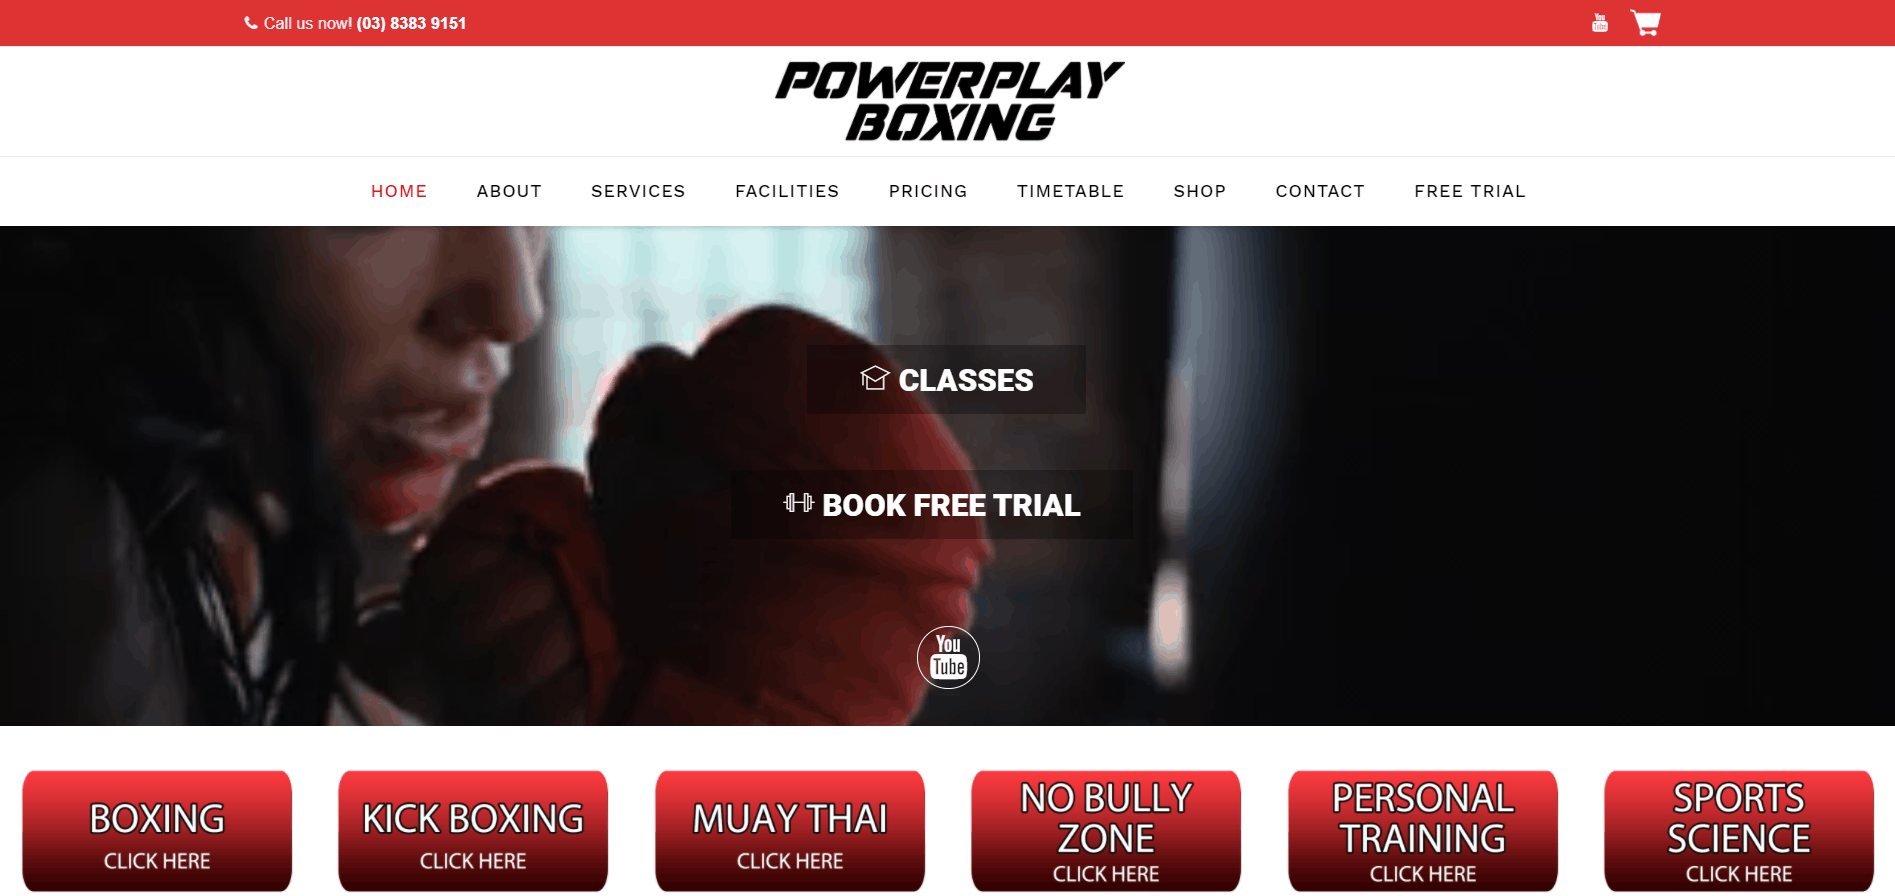 Powerplay Boxing